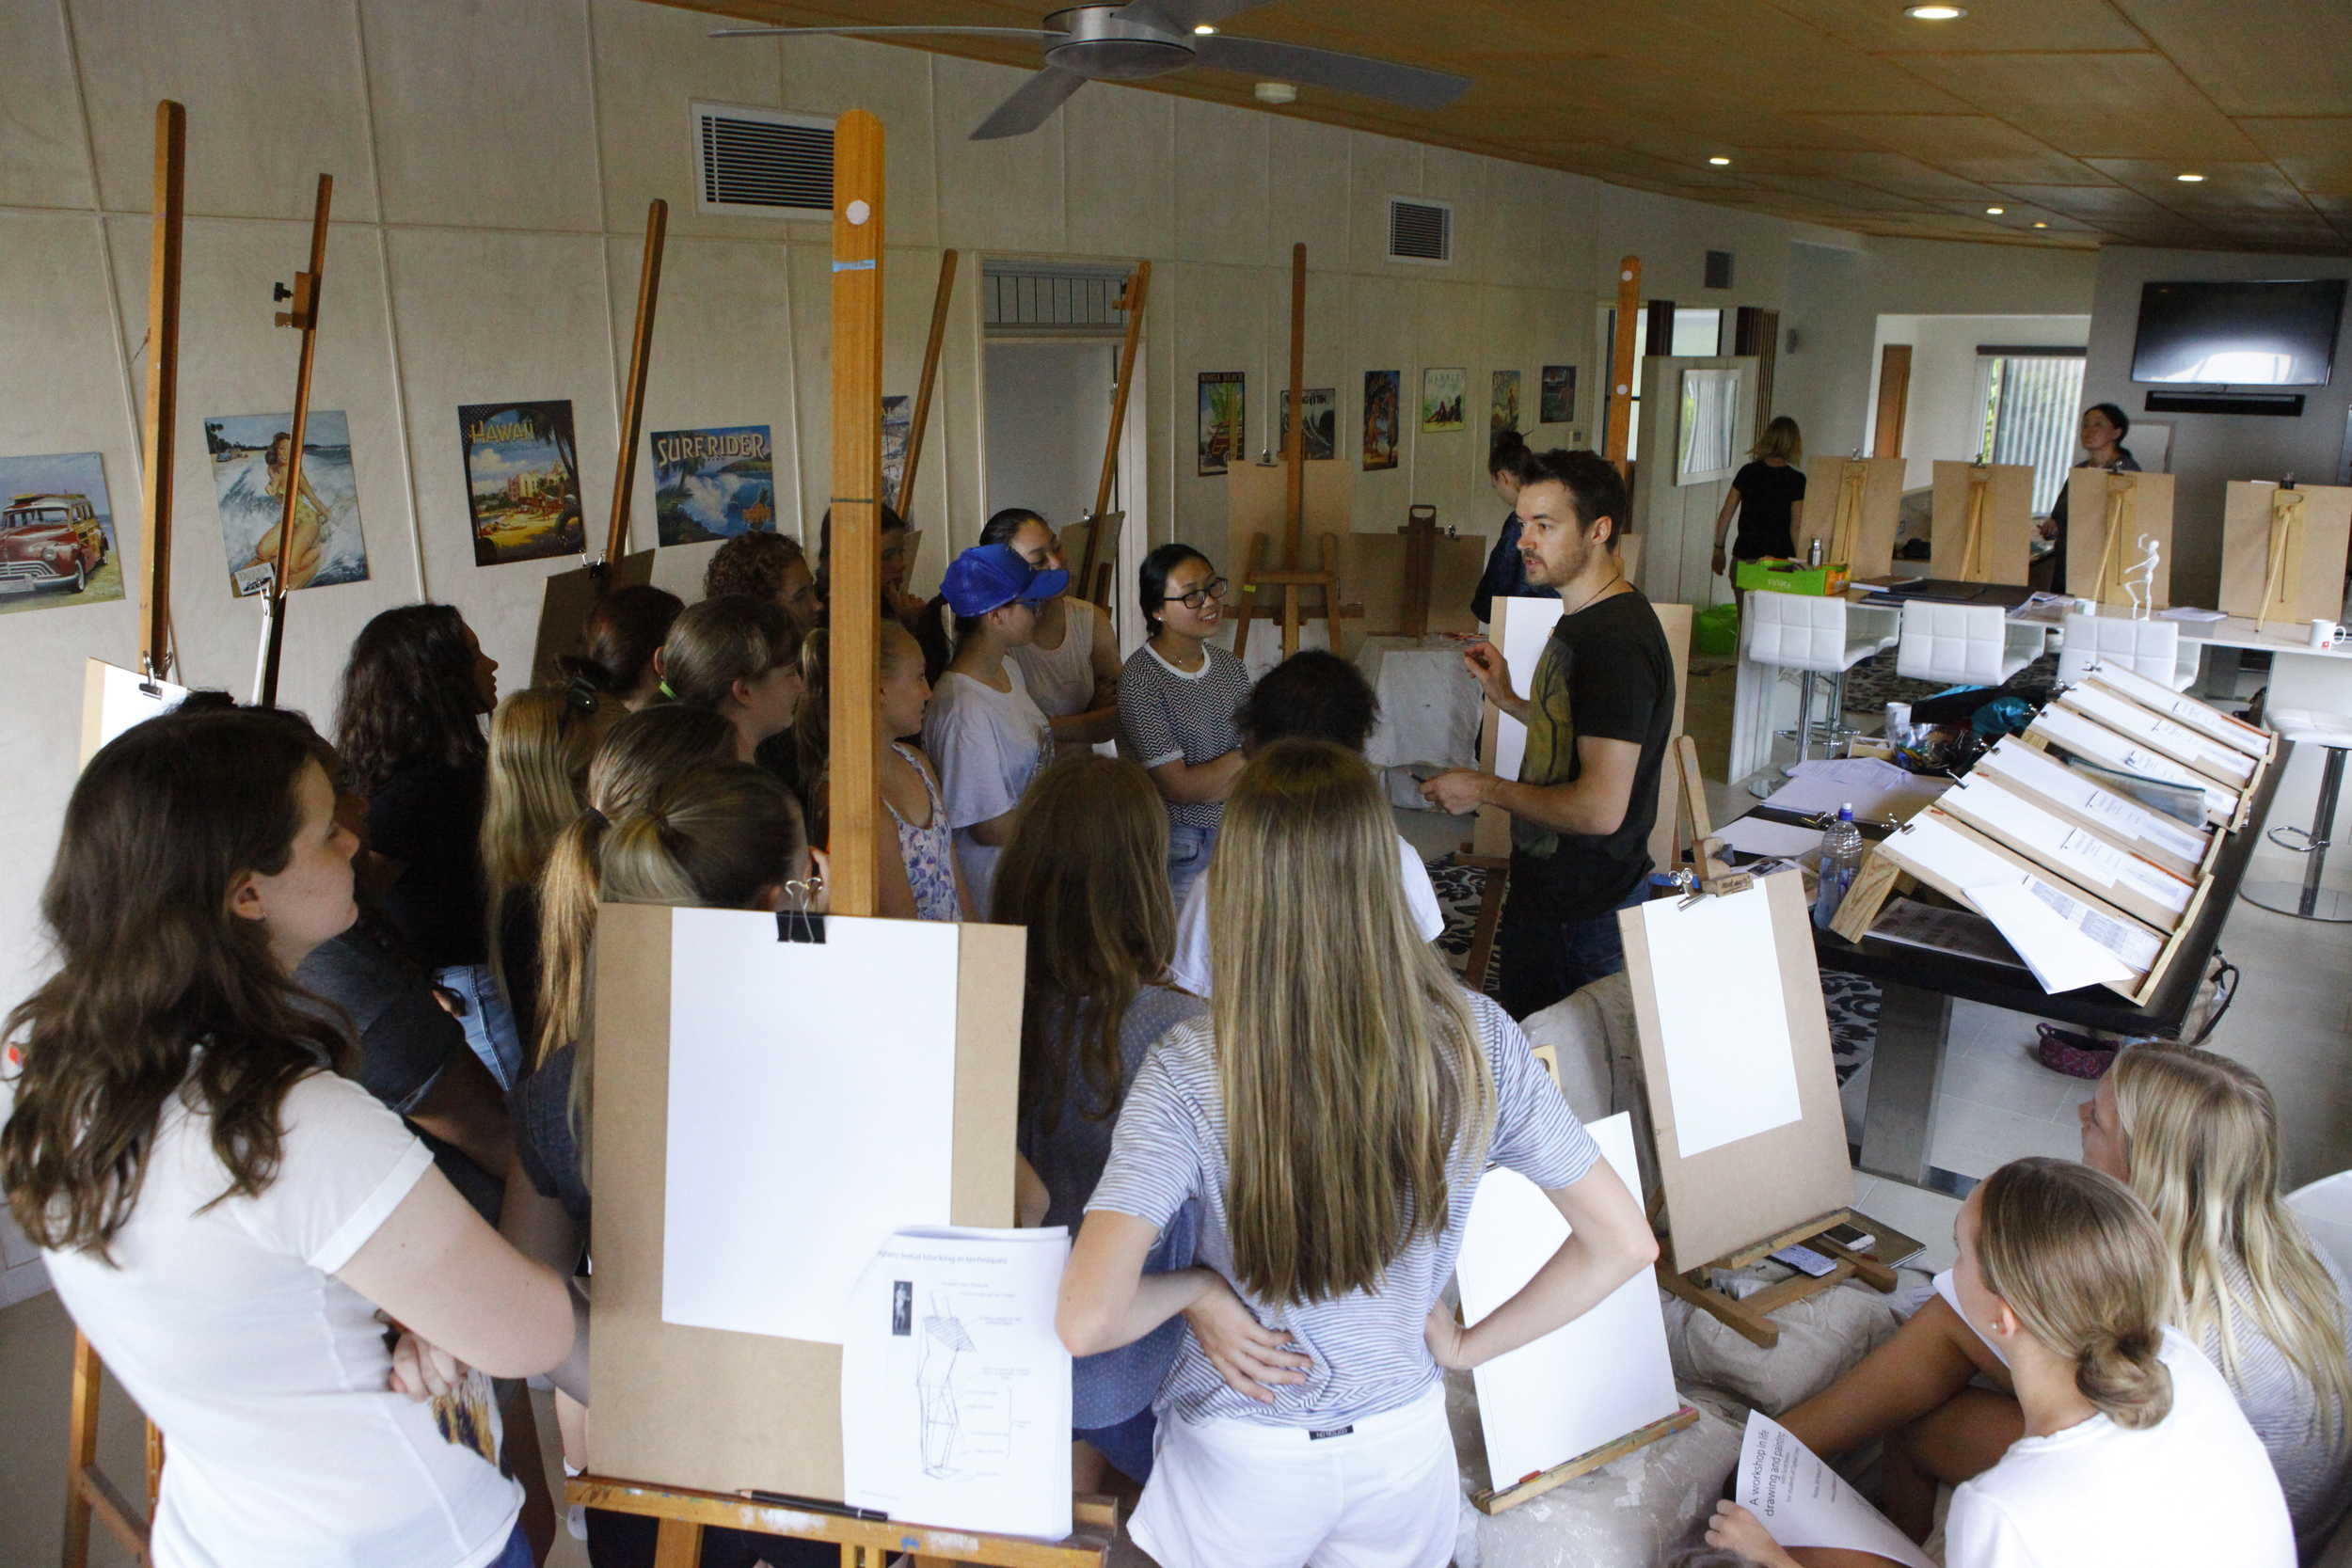 Scott teaching Life Drawing for Students of Clayfield College, Brisbane